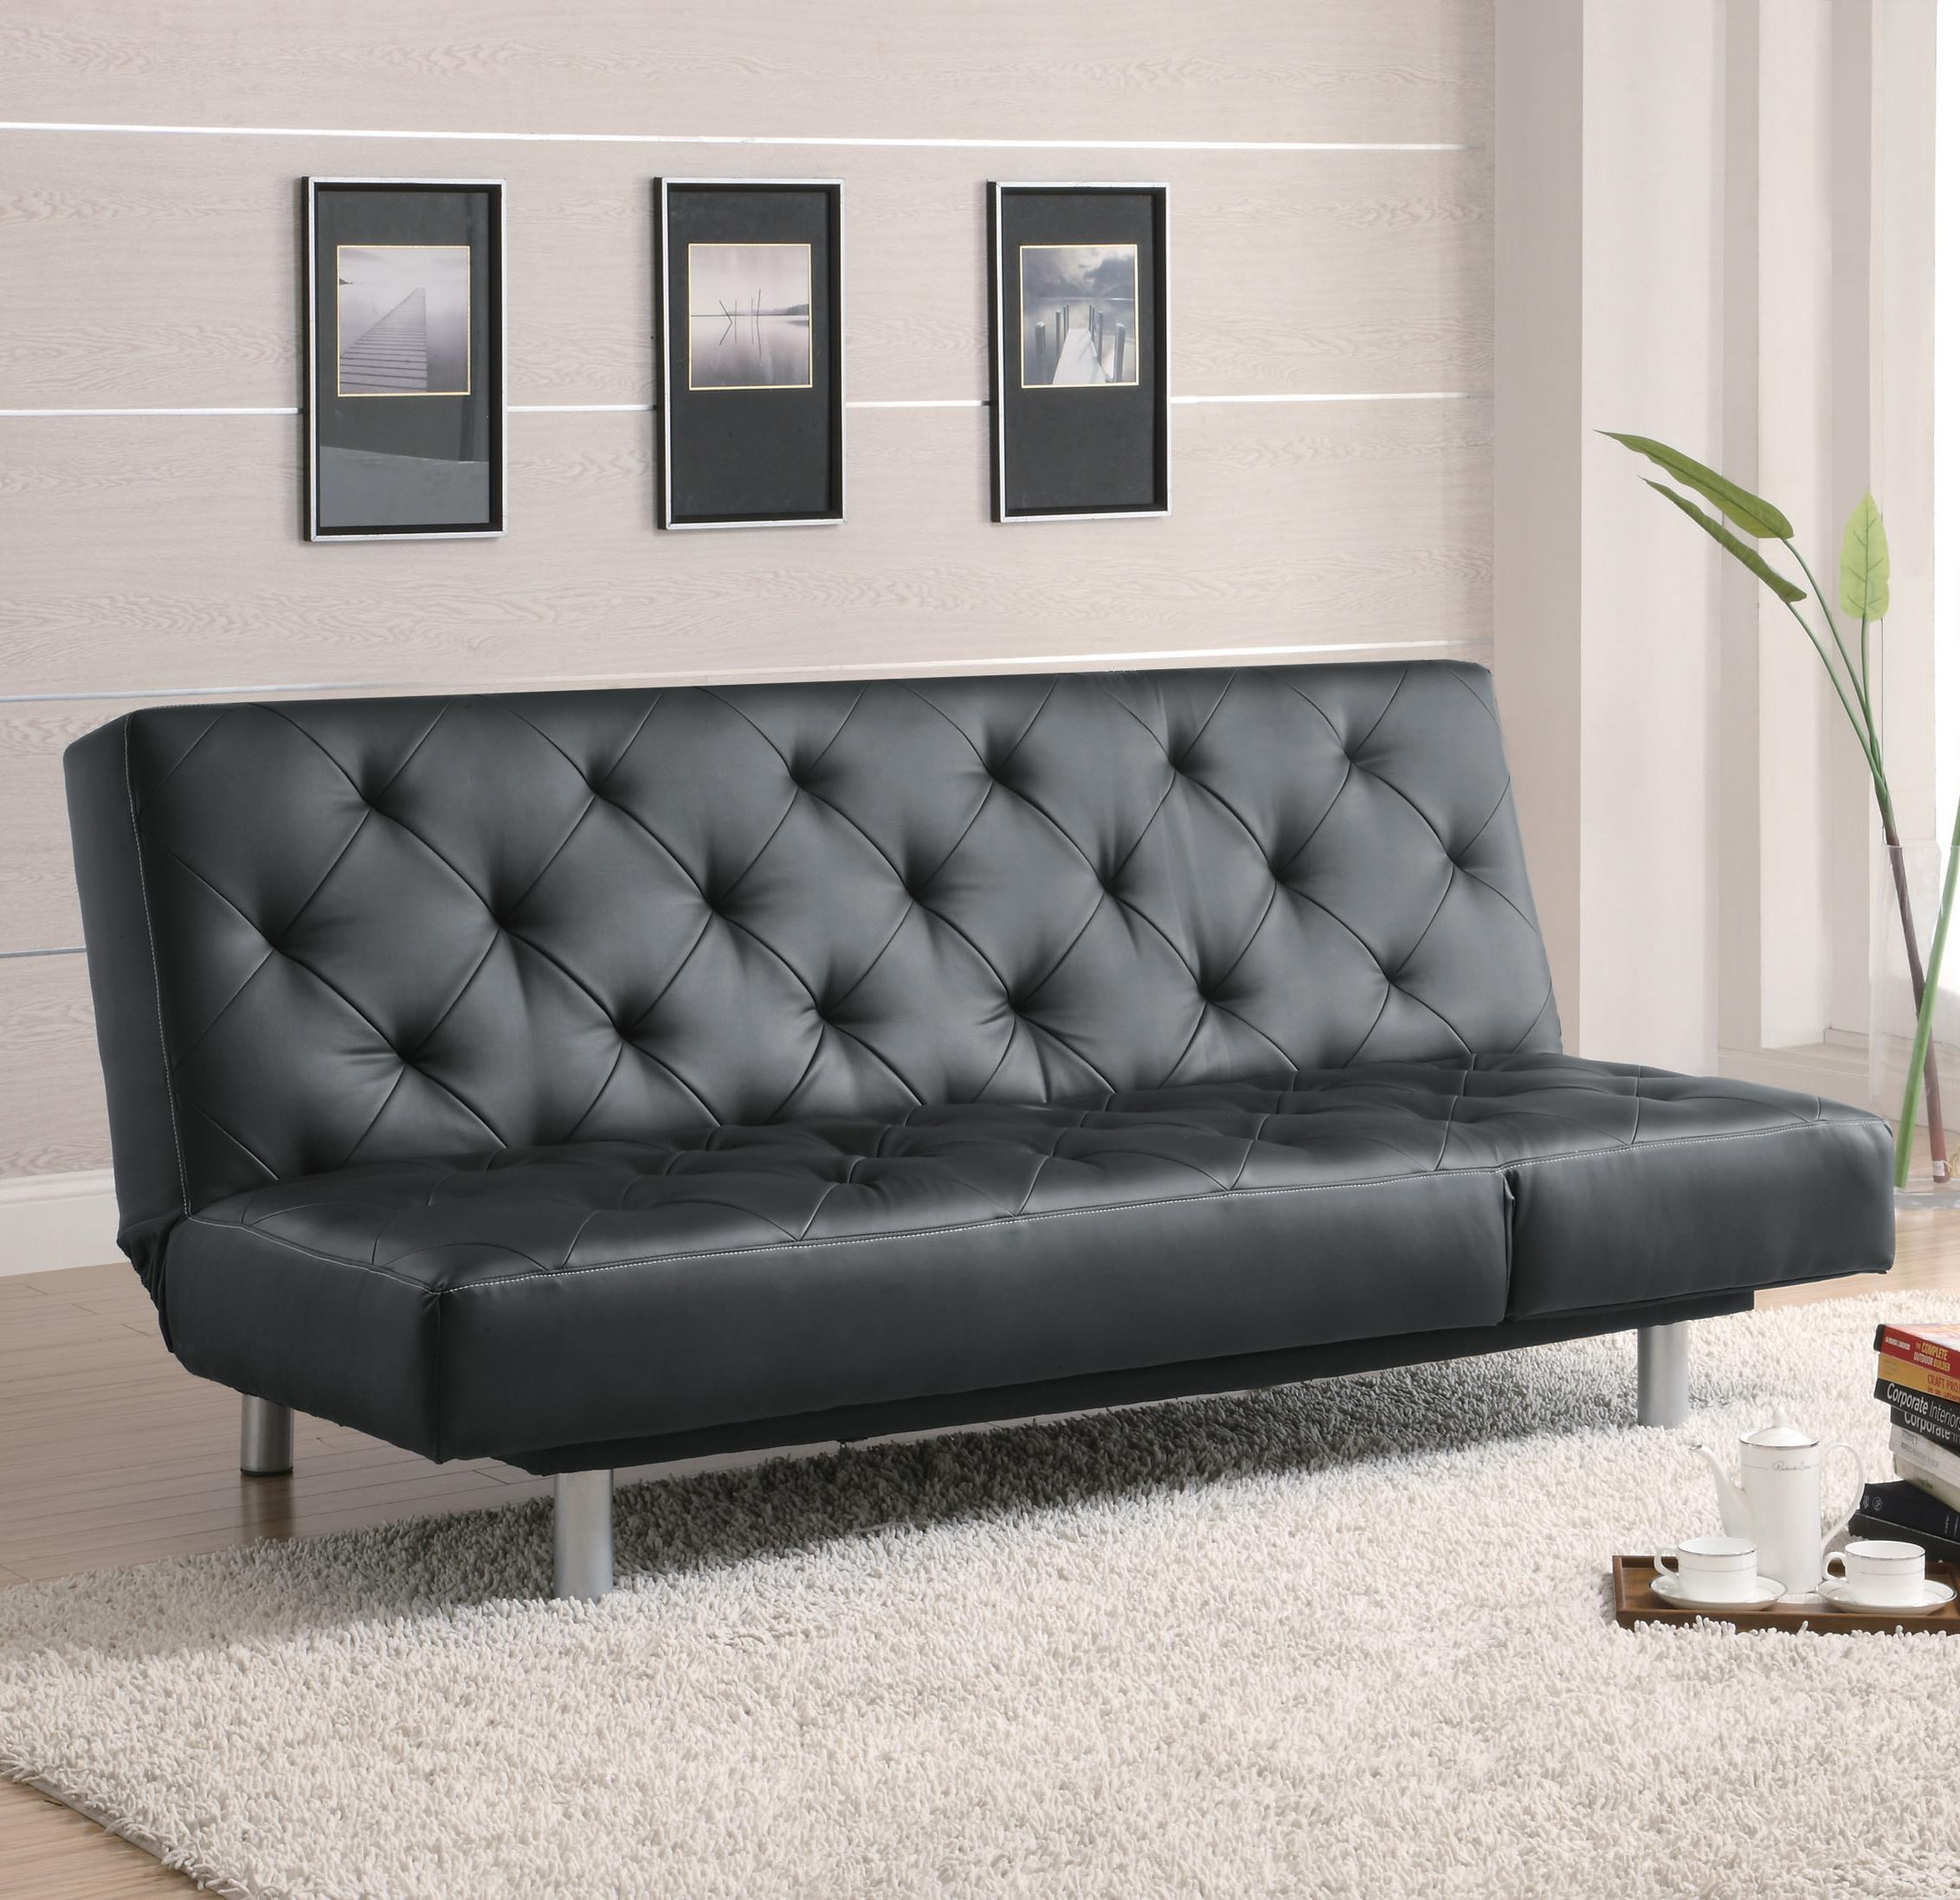 Black Vinyl Tufted Sofa Bed/Oversize Chaise